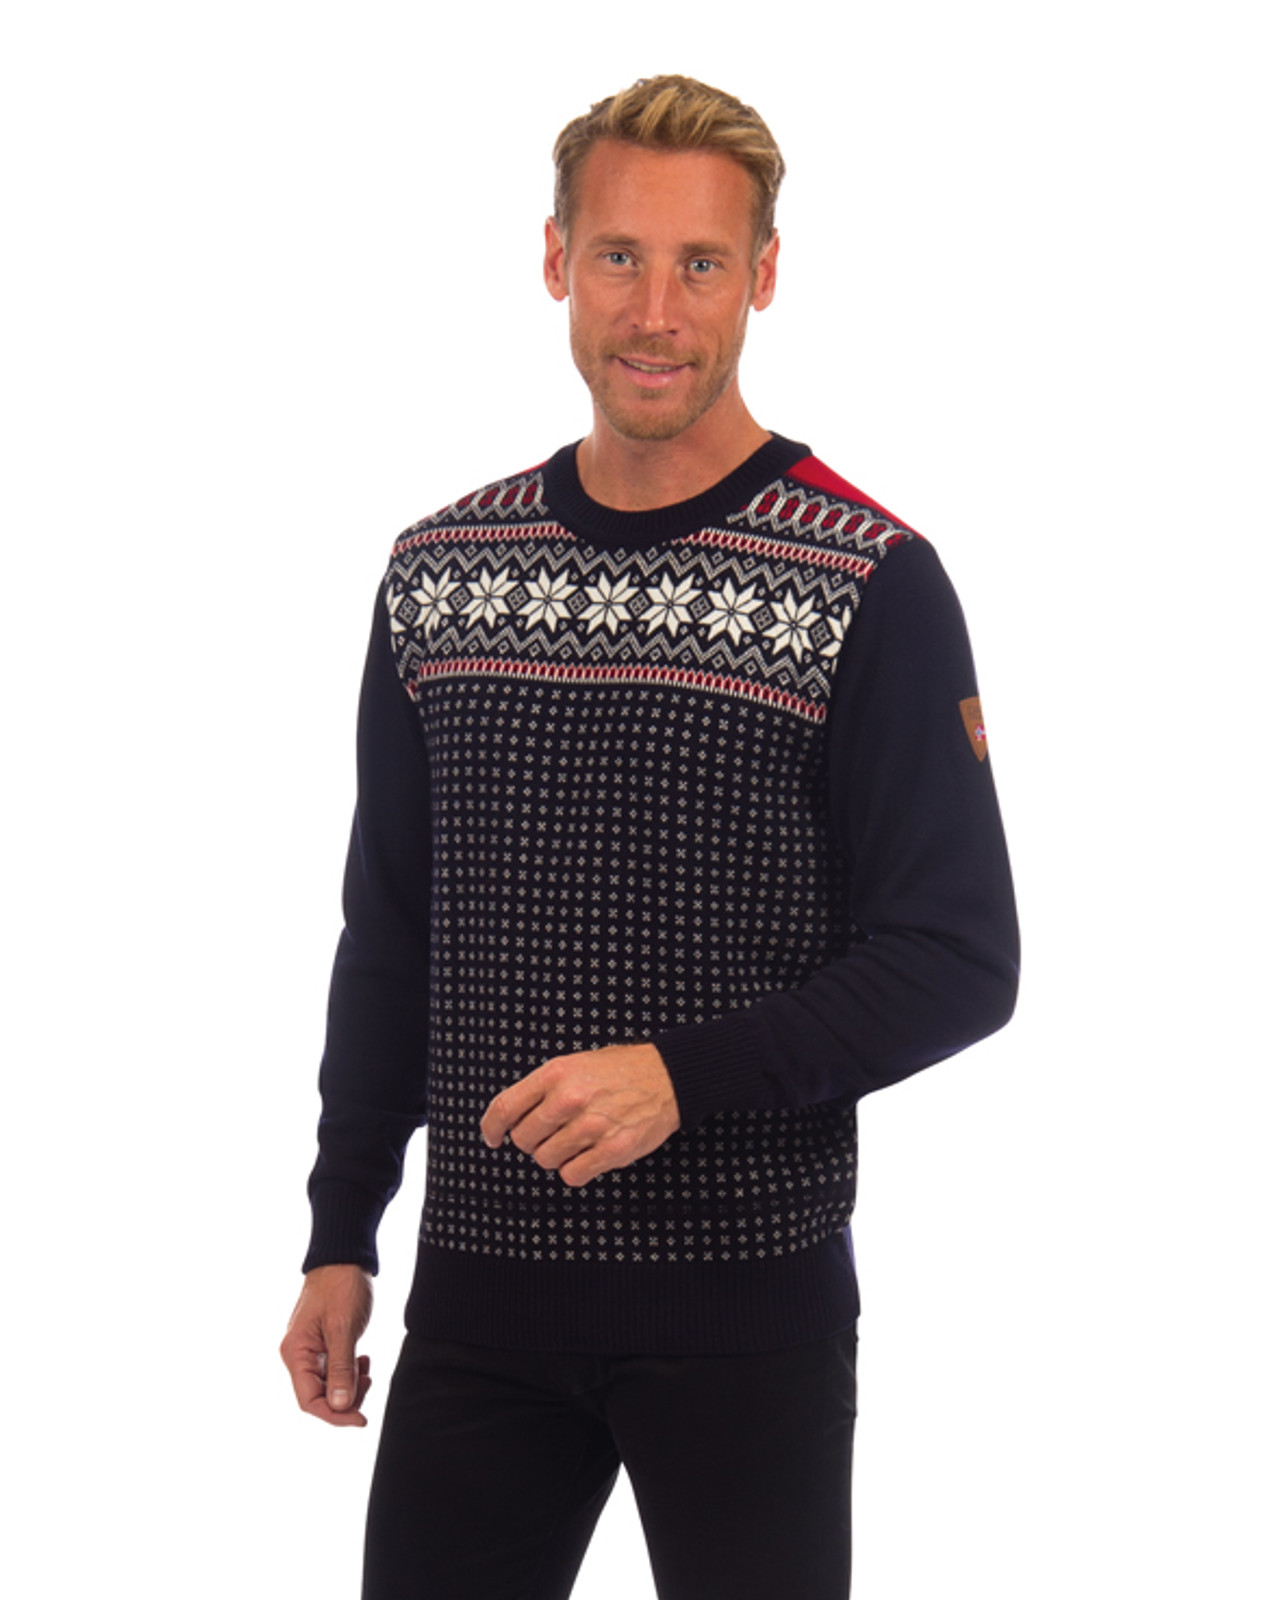 Alternate view of the Dale of Norway Garmisch Sweater, Mens, in Navy/Off White/Raspberry, 92611-C